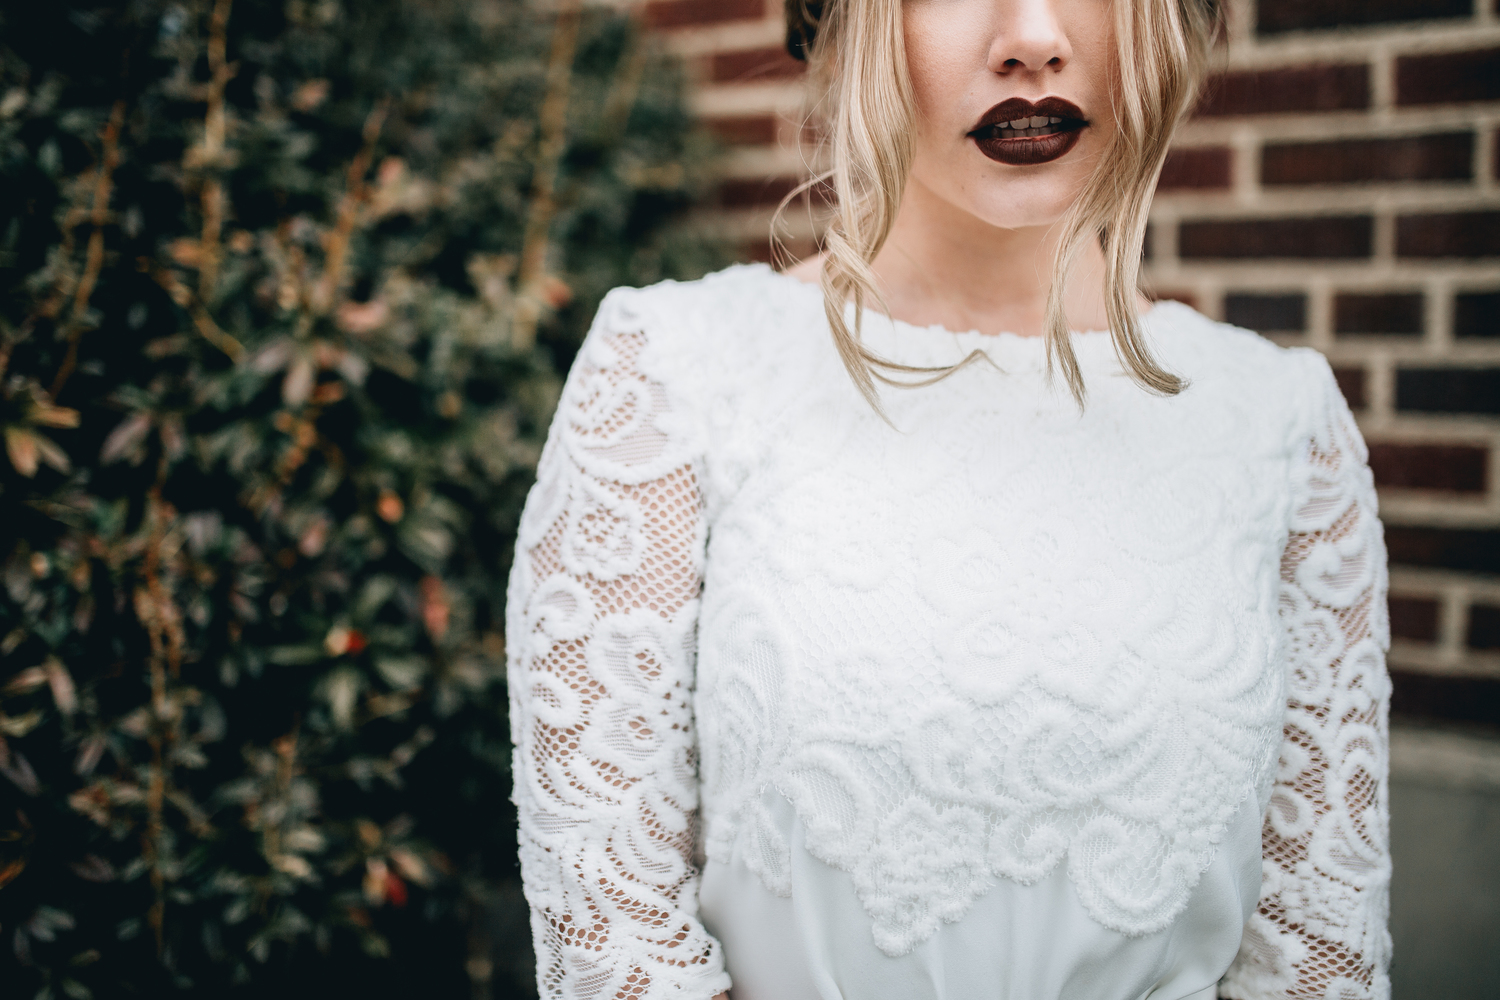 DETAILS  Styling by: Lucy Bergstrom  Photography by: Alice Cannon  Dress by: Aleksandra Salo  Makeup by: Rachel Kae Jenkins  Rentals provided by: Refined Vintage Events  Model: Joan Brown